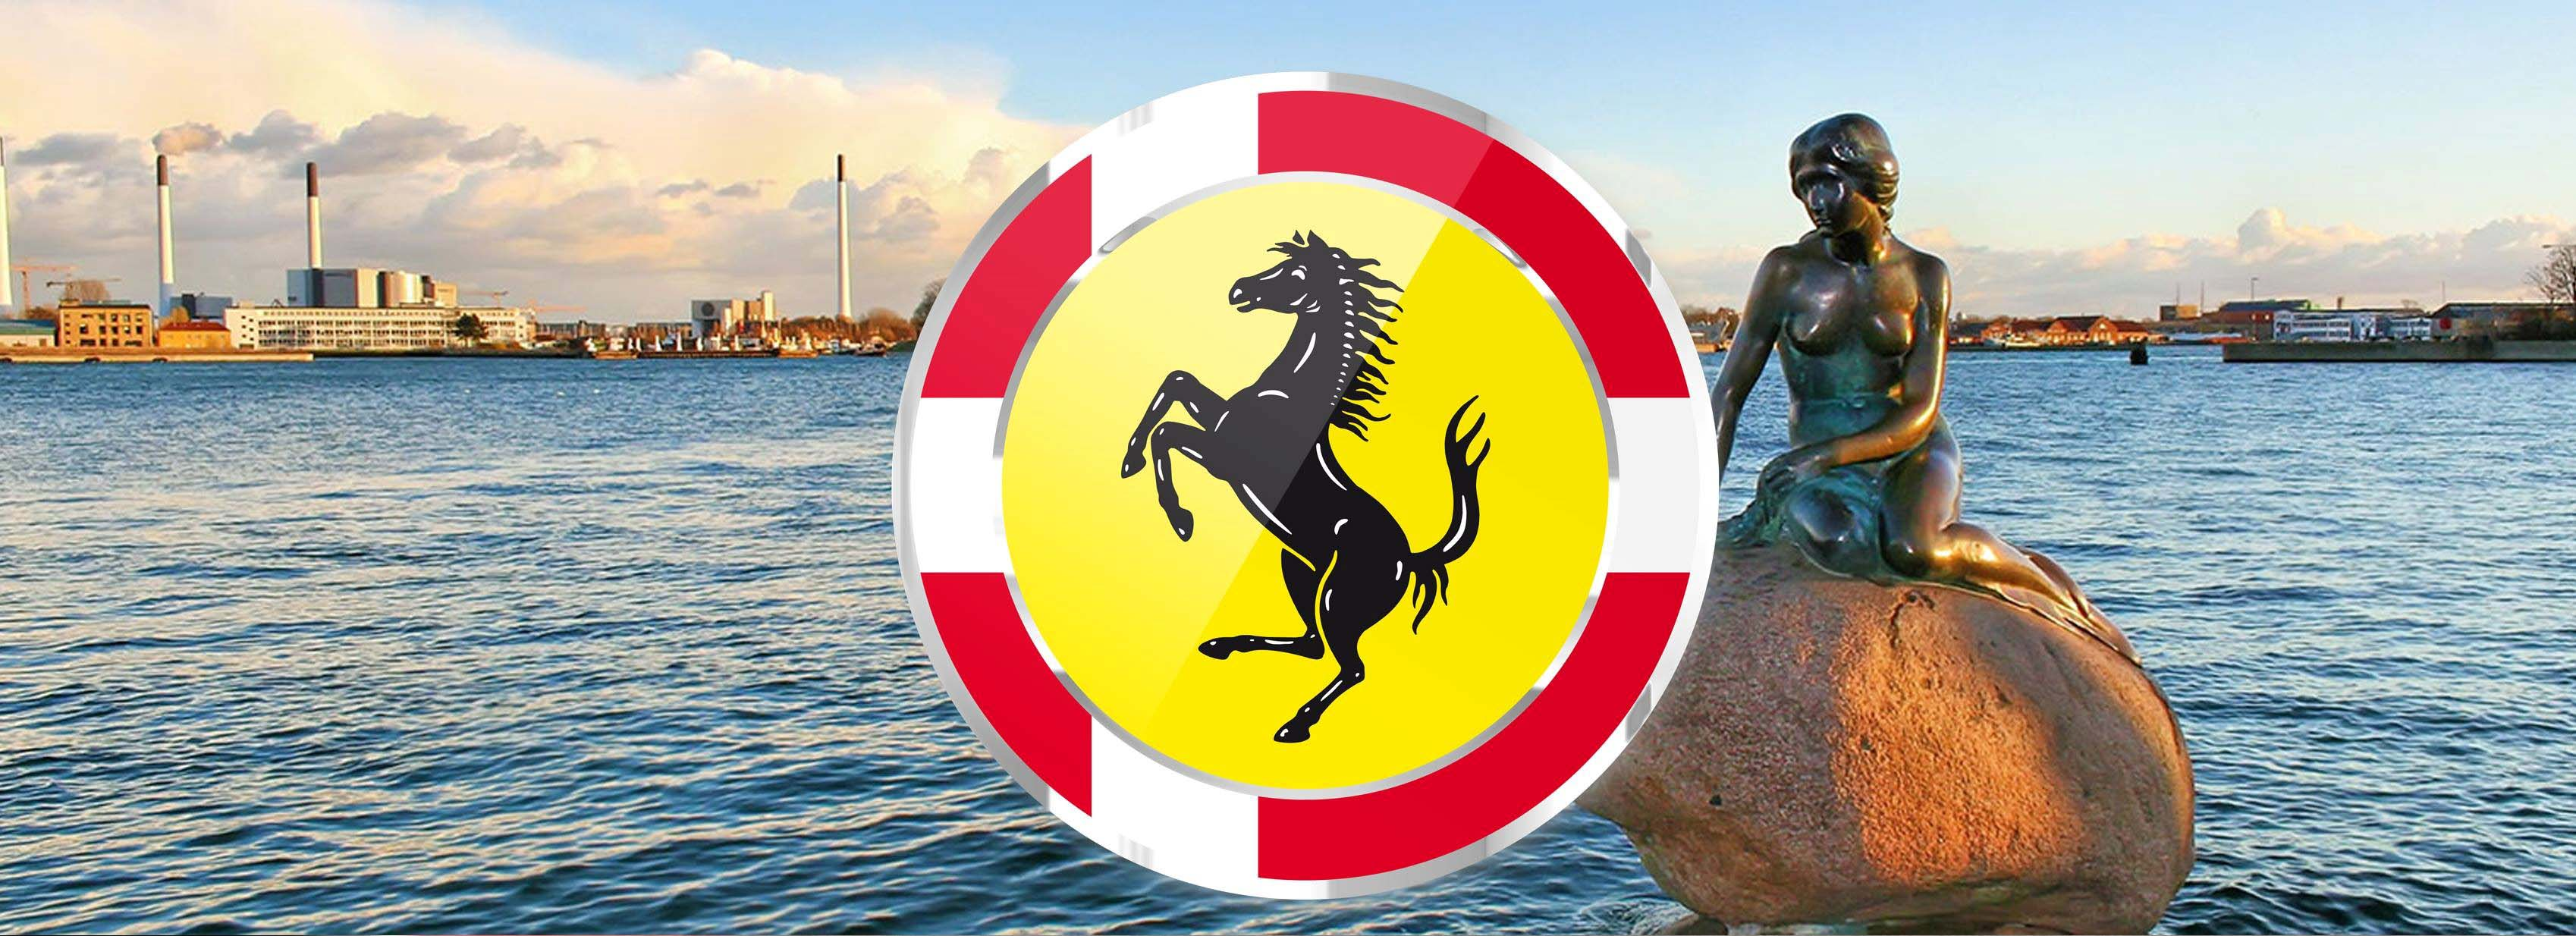 Ferrari Owners' Club Denmark